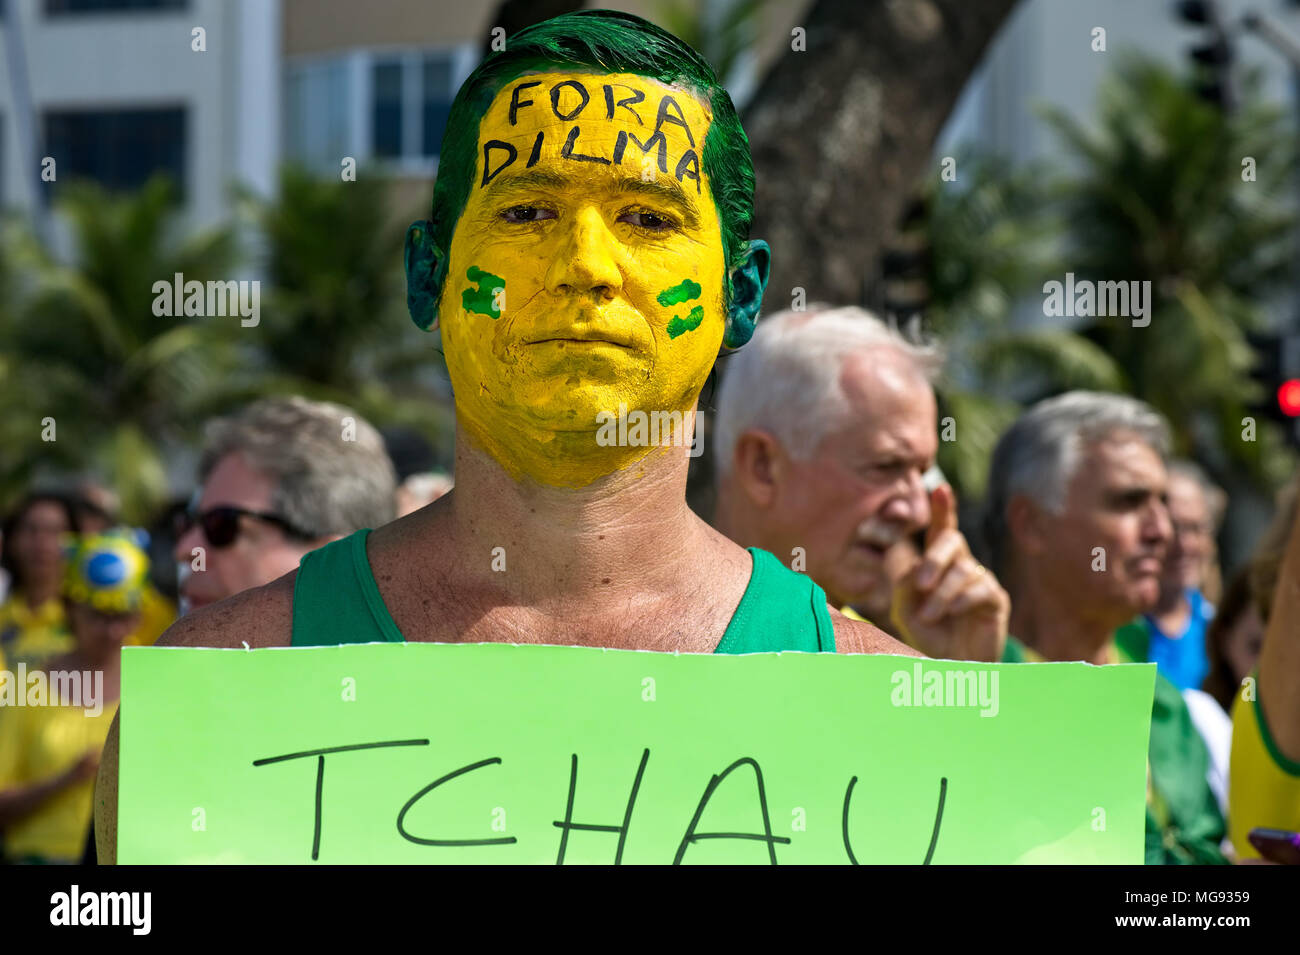 Copacabana beach, Rio de Janeiro, Brazil - July 31, 2016: Demonstrator takes part in a protest demanding the impeachment of President Dilma Rousseff - Stock Image